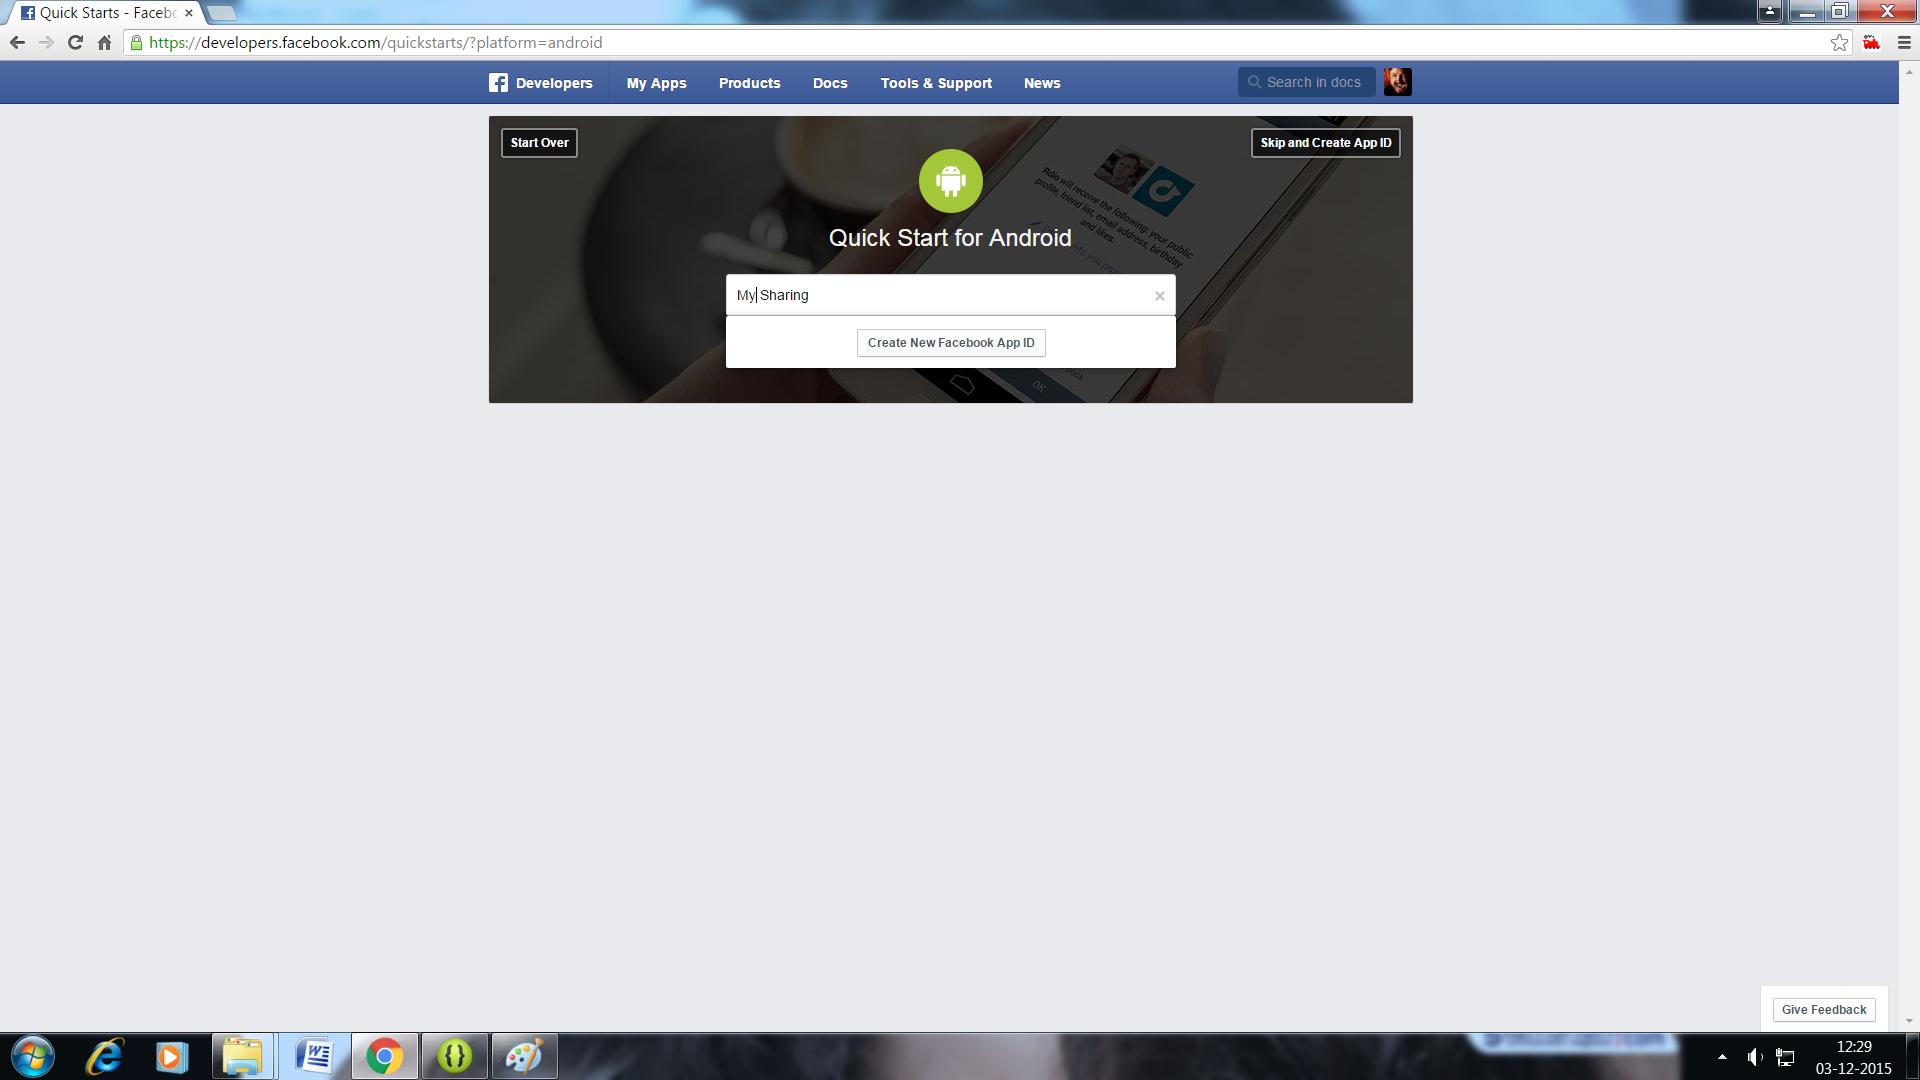 How to Create Facebook App ID